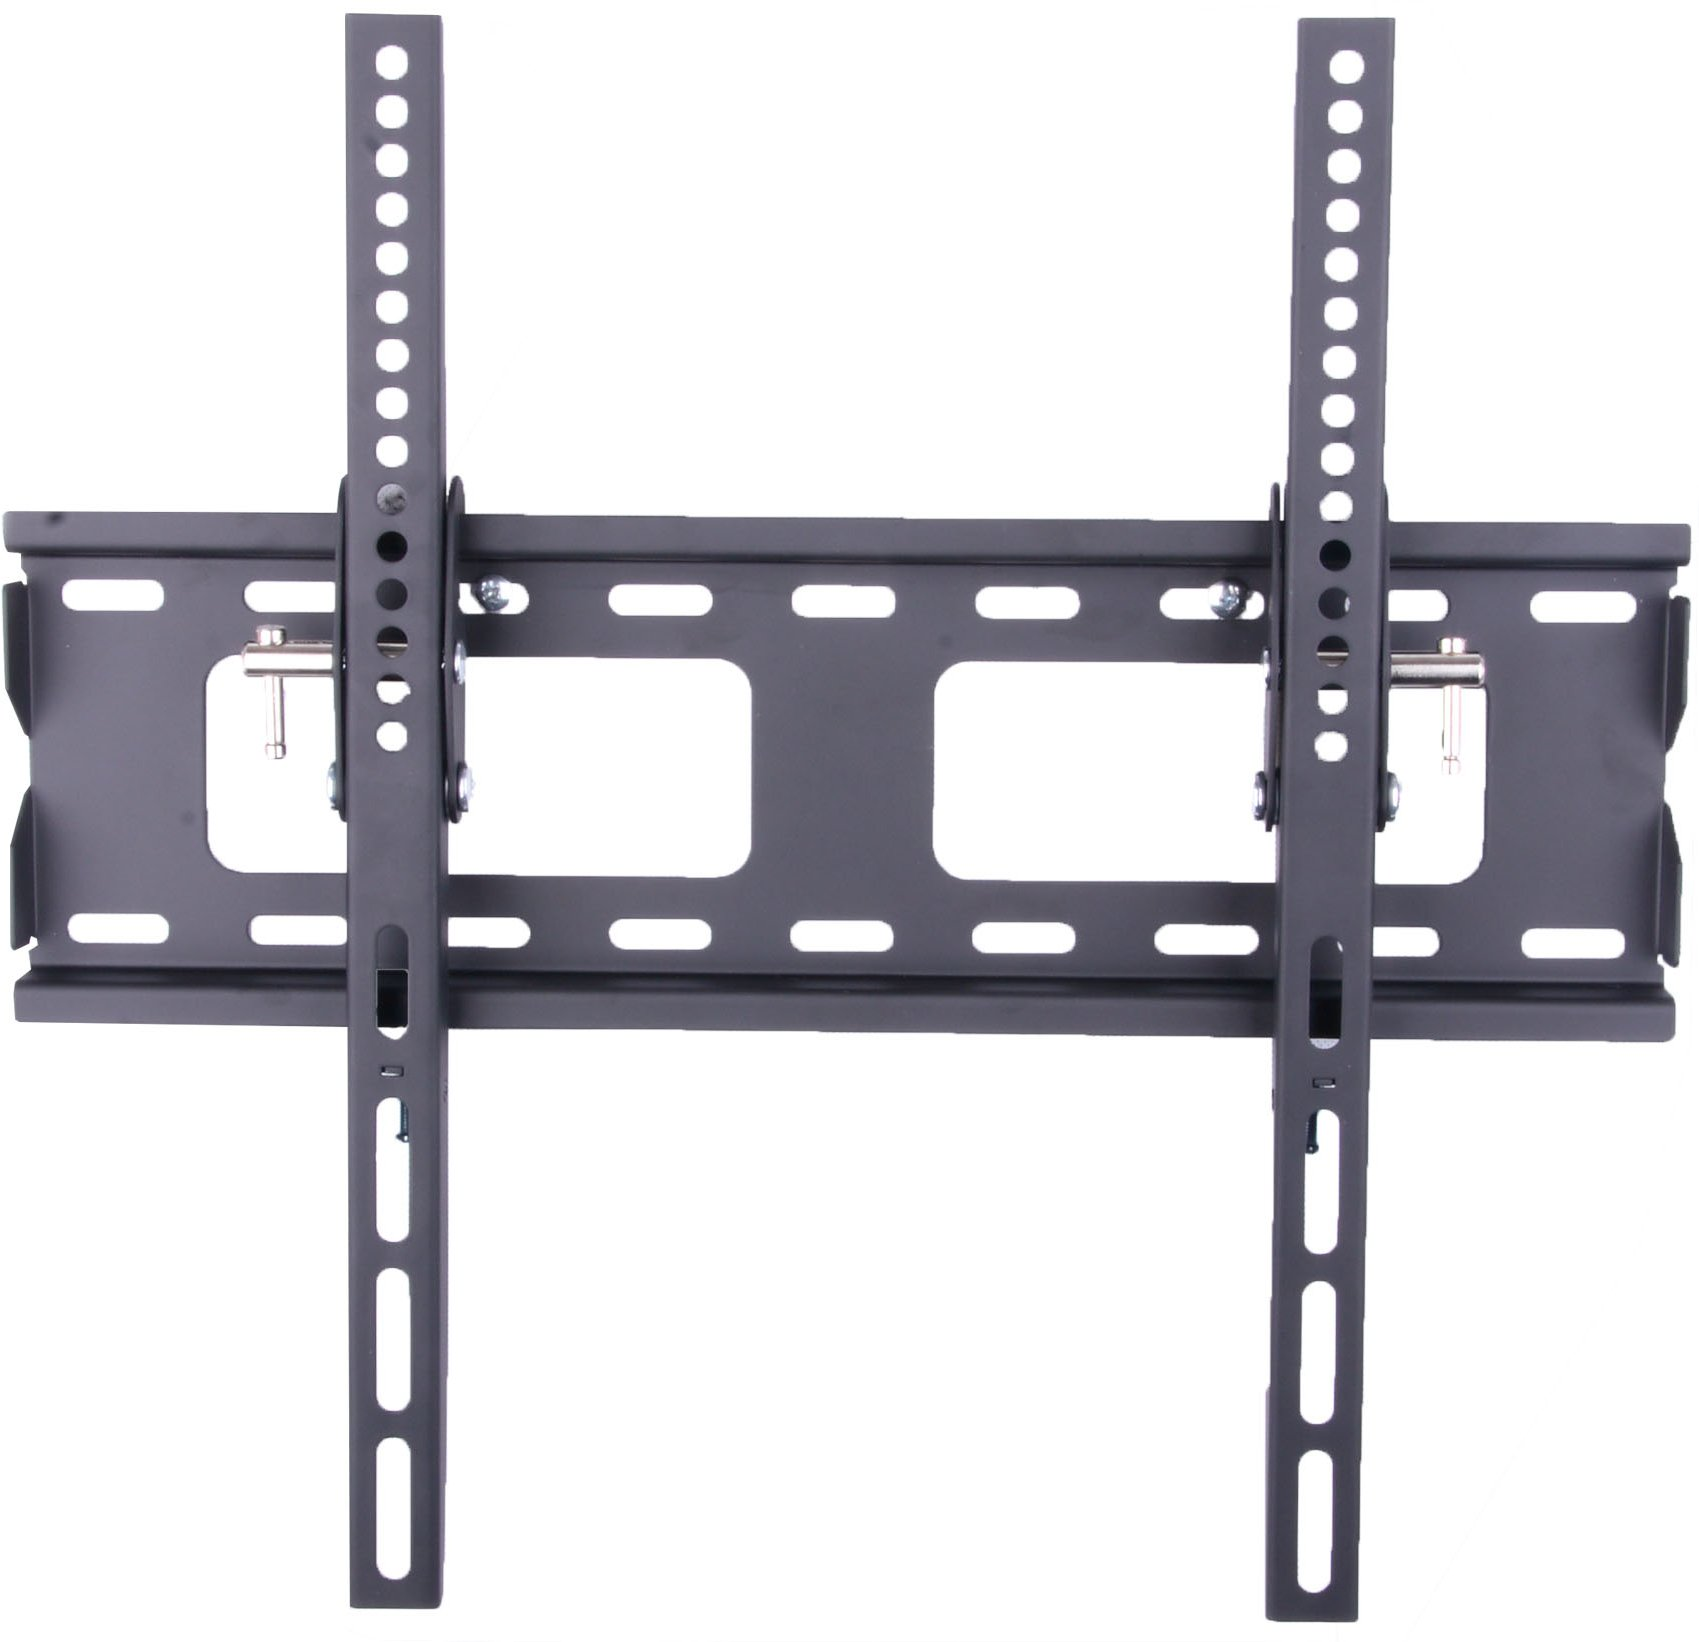 53 NEW Tilt // Tilting TV Wall Mount Bracket for Samsung 51 57 57 Plasma TV